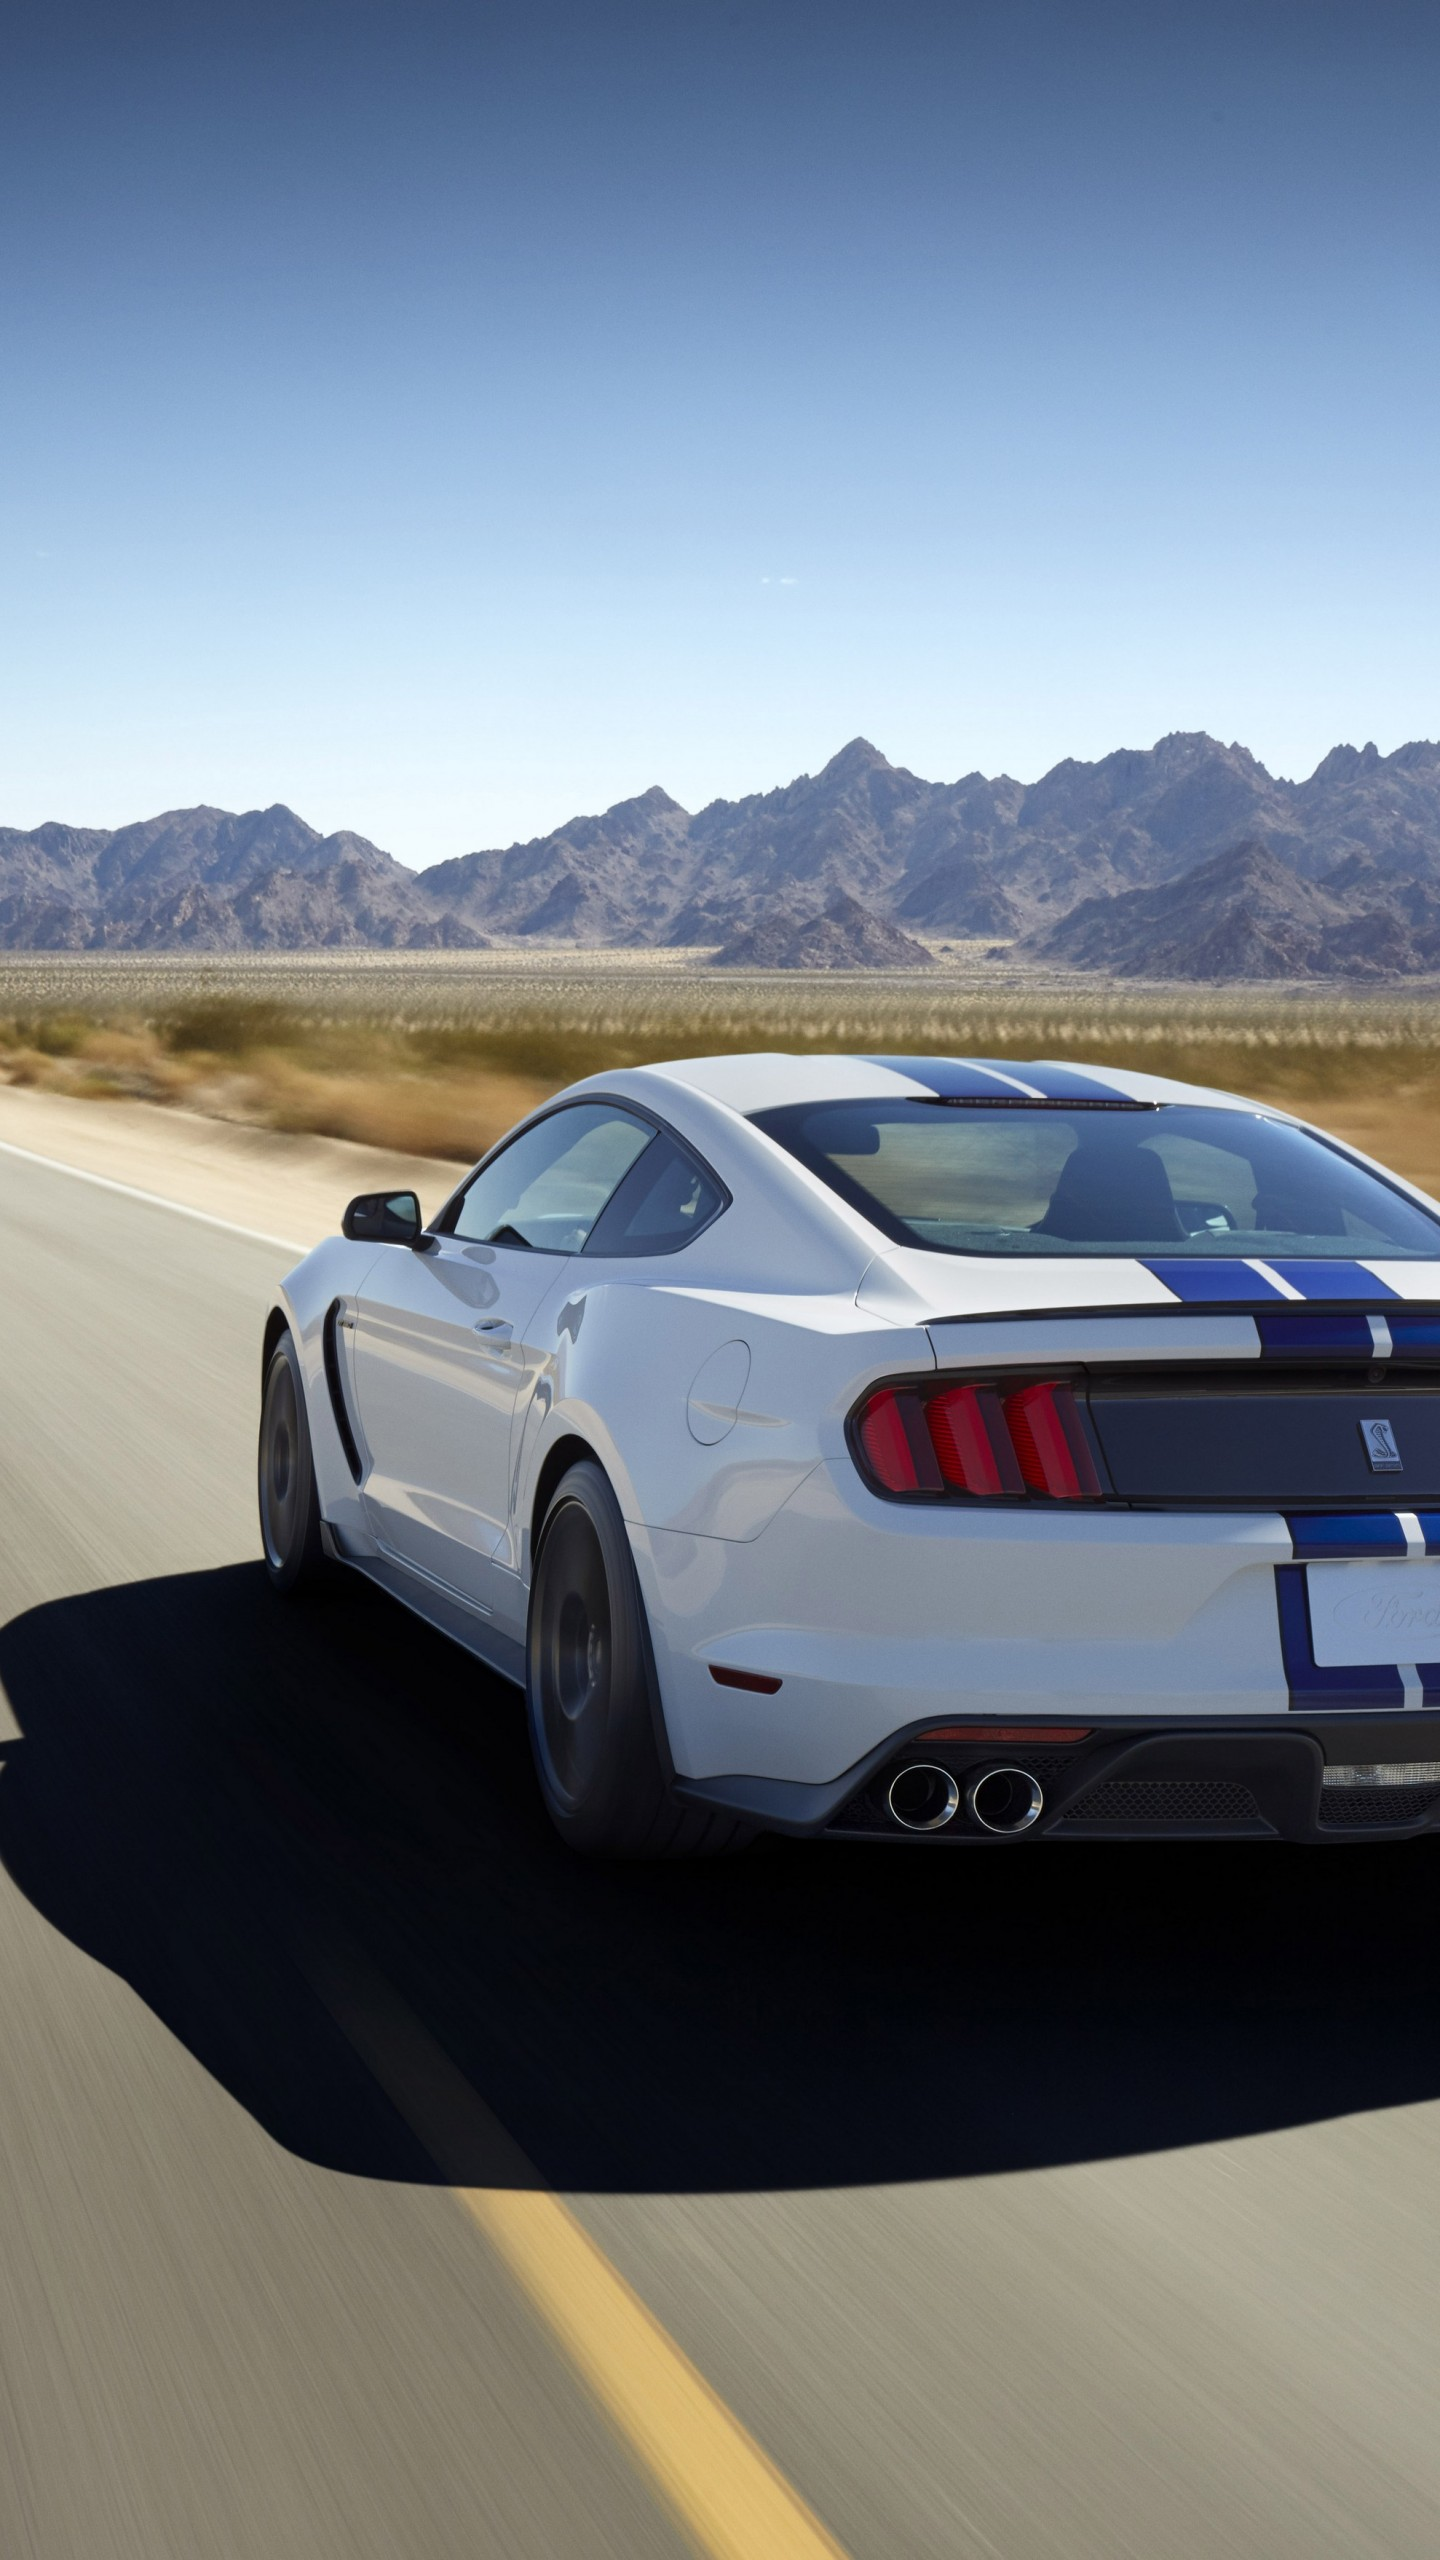 Wallpaper Ford Mustang Shelby Gt350 Shelby Gt350